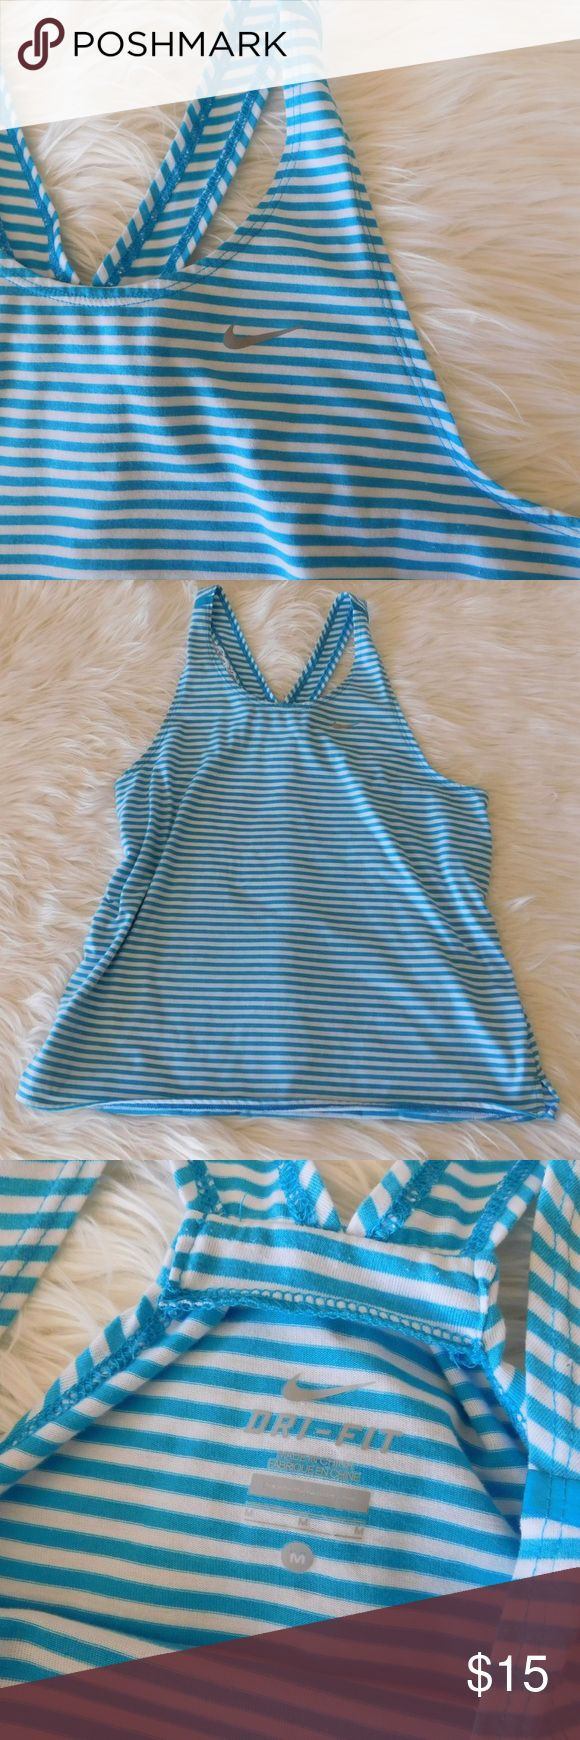 Nike Tailwind Stripe Running Tank Tidal Blue - M Good, preowned condition! Blue and white striped tank - great for running or the gym! From the website: Racerback tank top, Vented hem, Dri-Fit fabric, Reflective Nike swoosh logo on left chest, 85% Polyester 15% Cotton.  I have lots of workout clothes too! So bundle away & save! 🤑🤑💪 Nike Tops Tank Tops